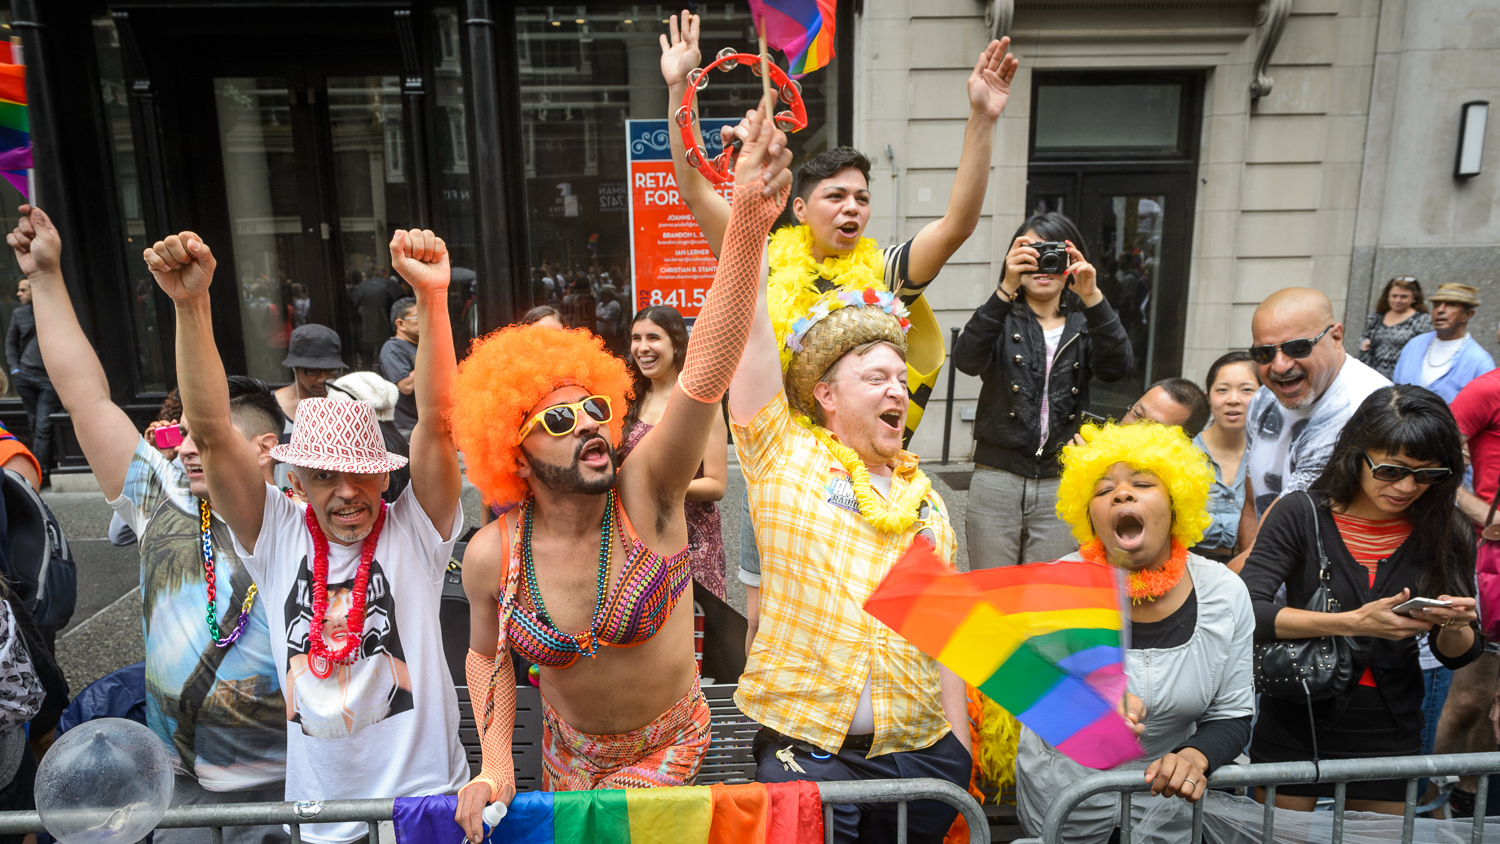 Photos of the NYC LGBT Pride March